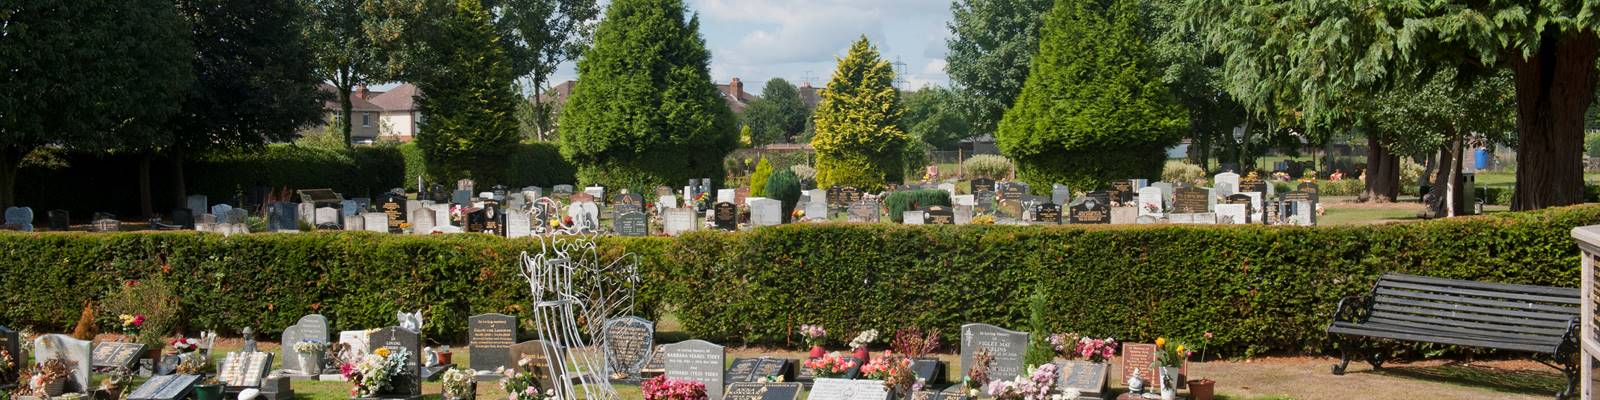 Eastleigh_Brookwood_Cemetery16.jpg